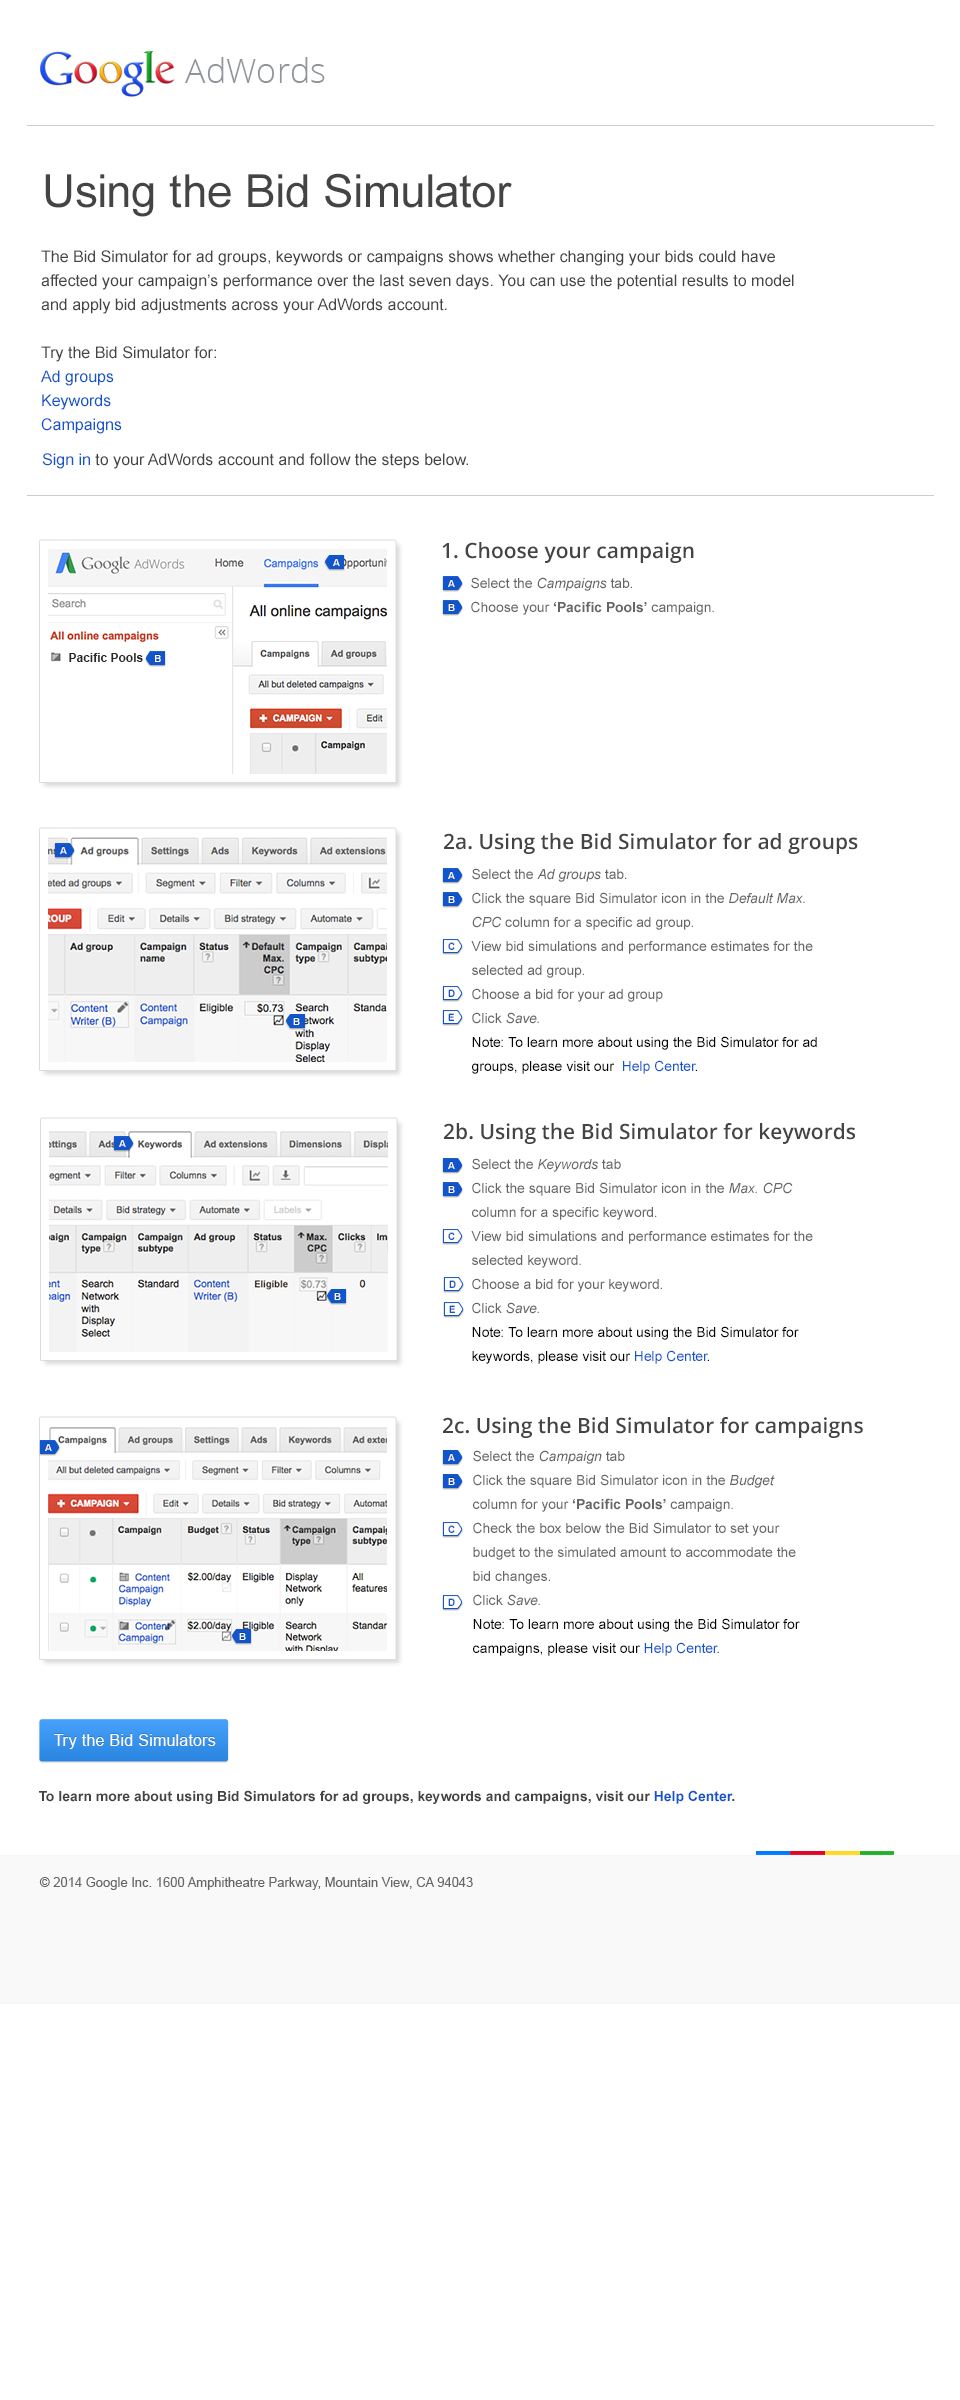 Boe Gatiss - AdWords Bid Simulator Landing Page for Google